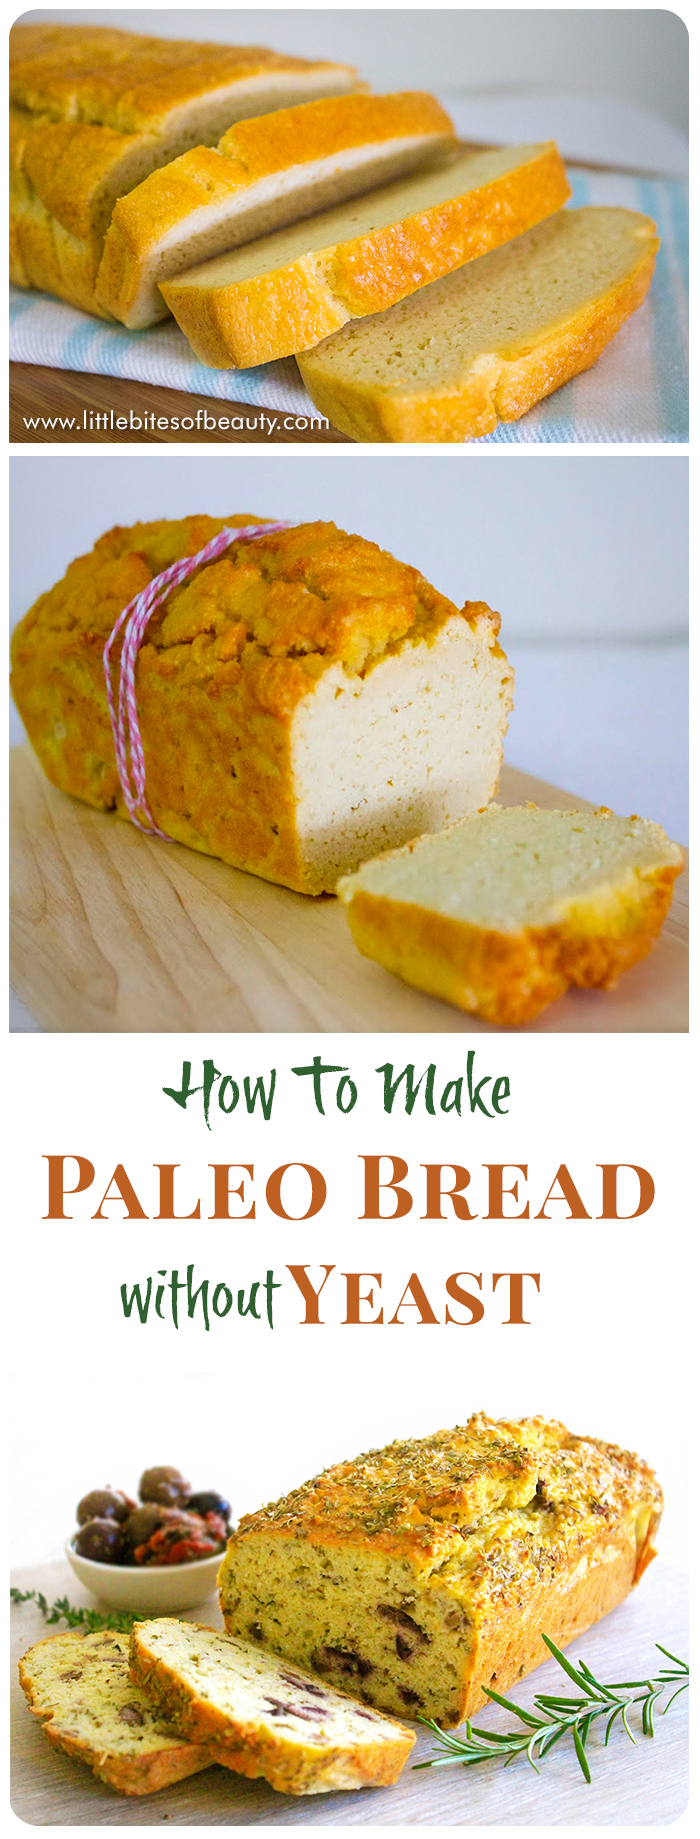 How To Make Paleo Bread Without Yeast